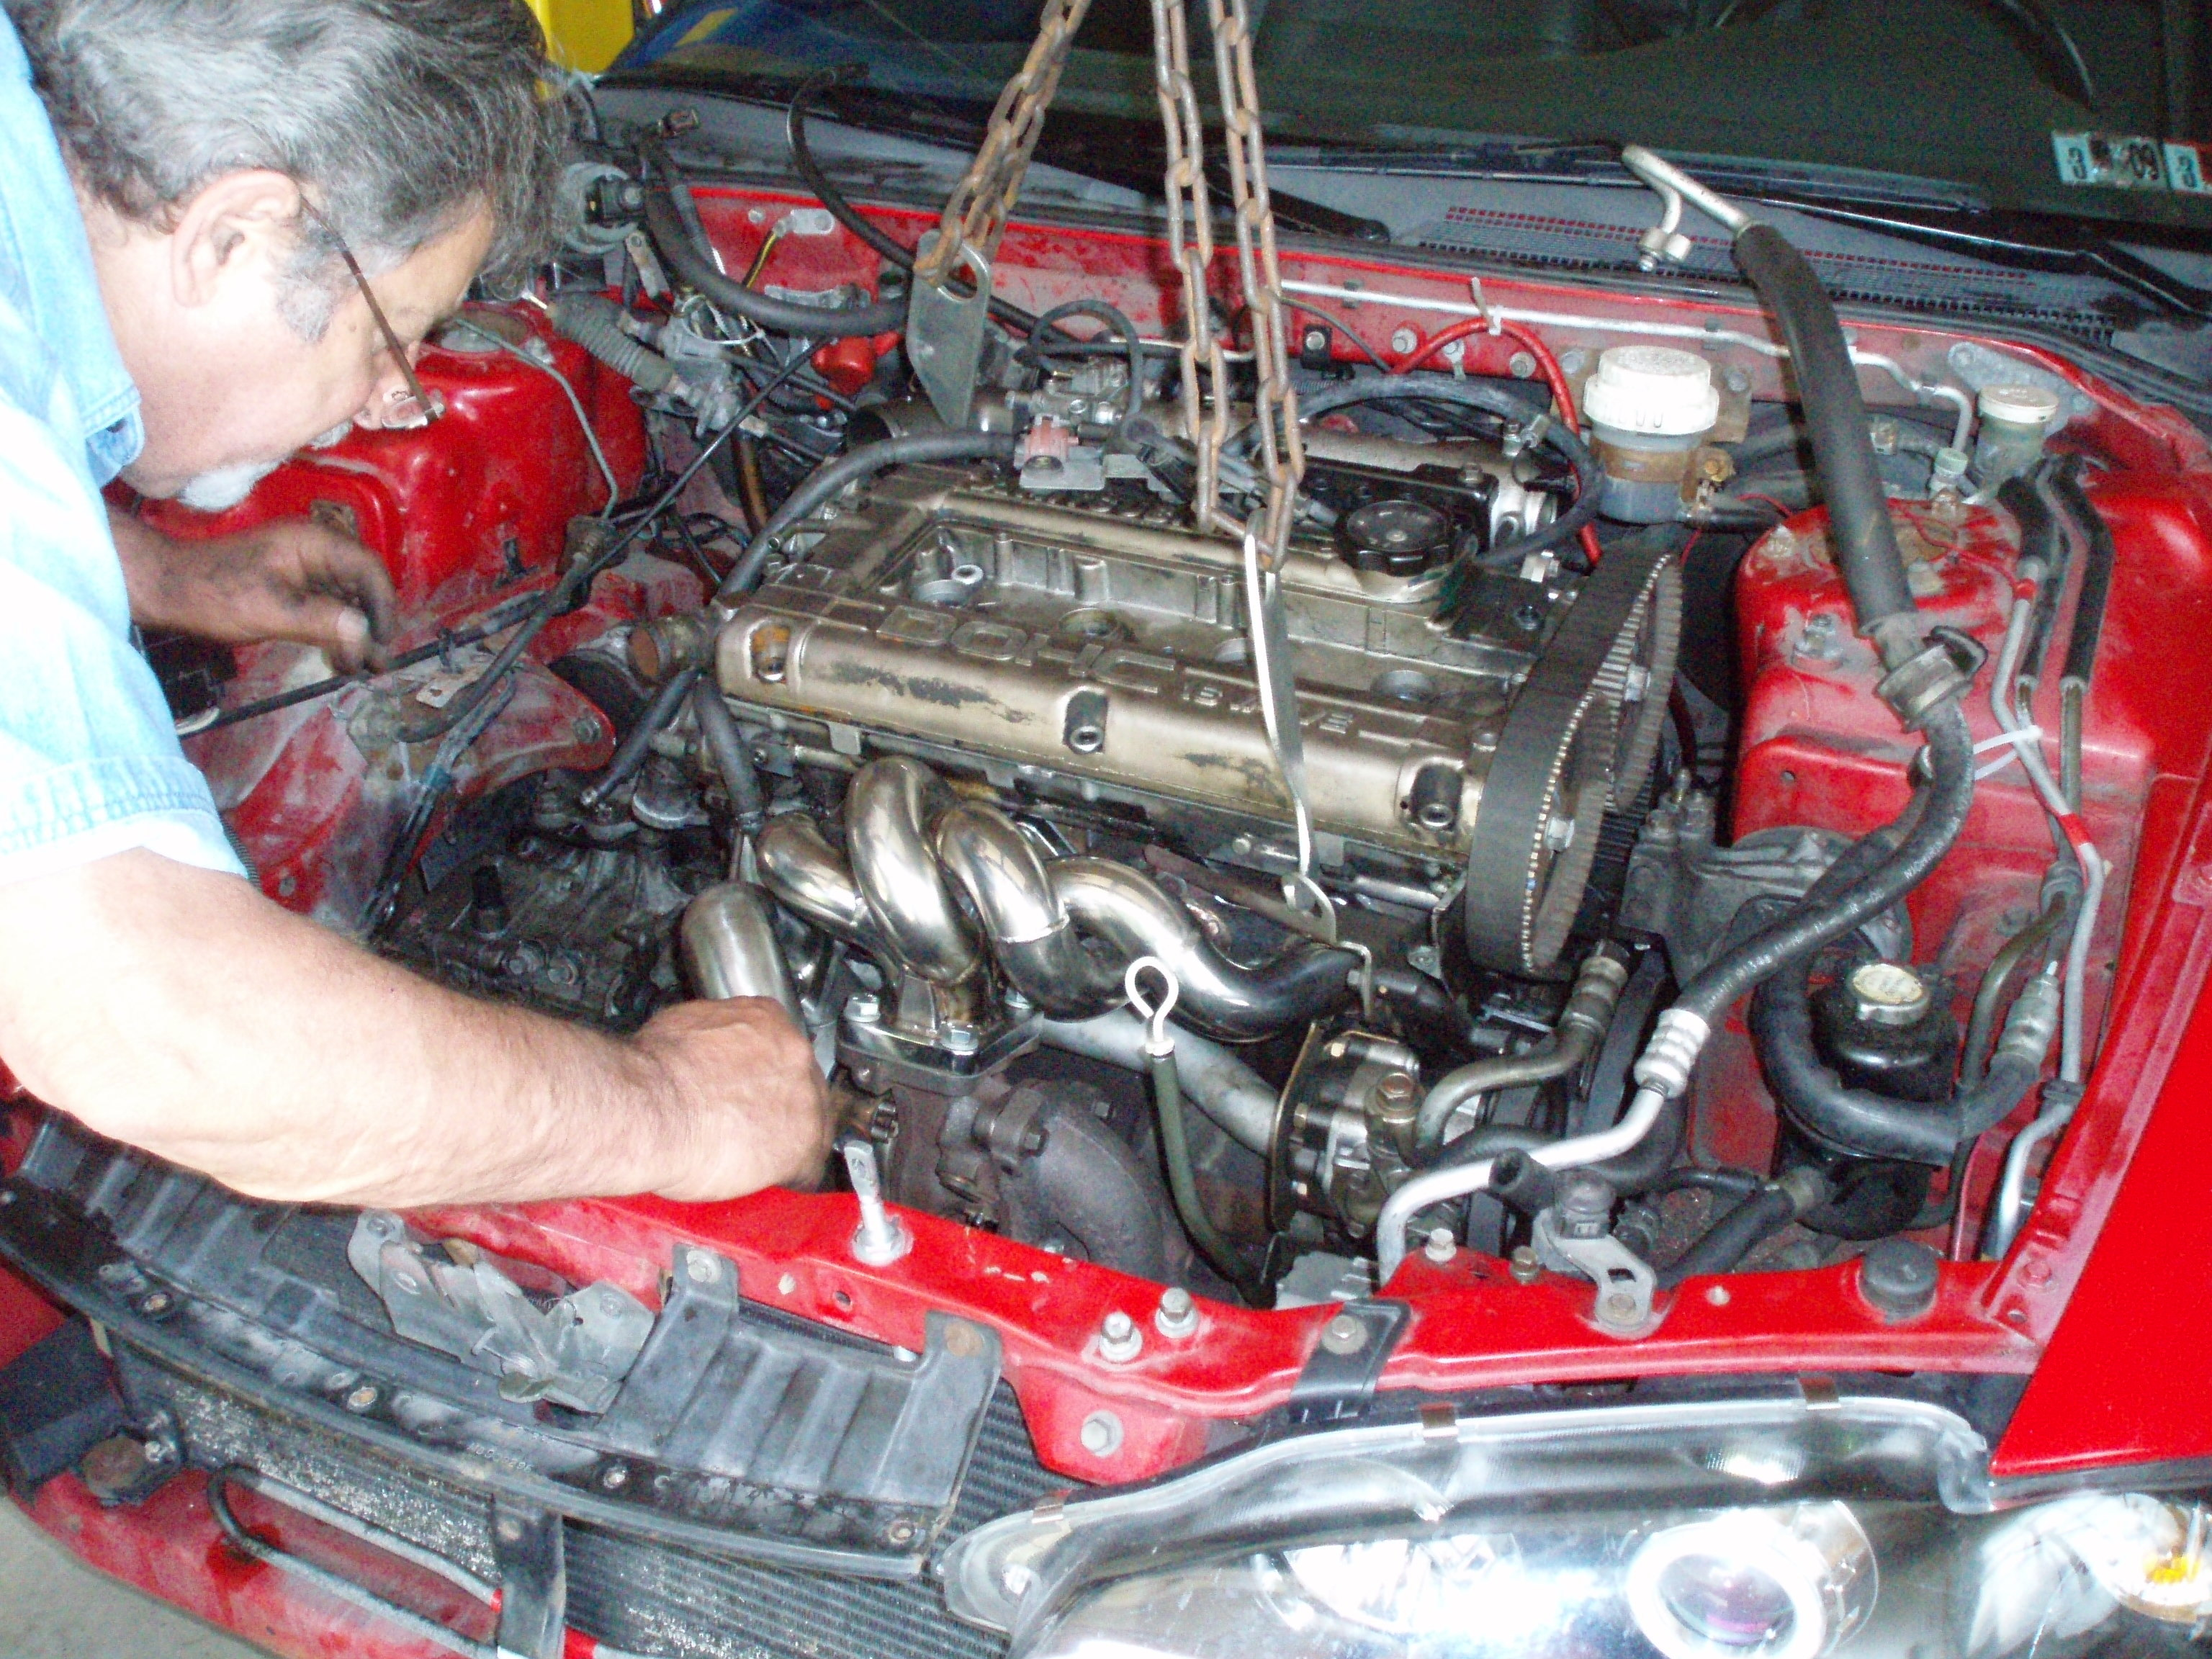 will mitsubishi run turn carb a by capture answered mack auto pump pin verified plugs pcv fuel rotor mechanic cap max filter wires truck and over new pinterest mighty